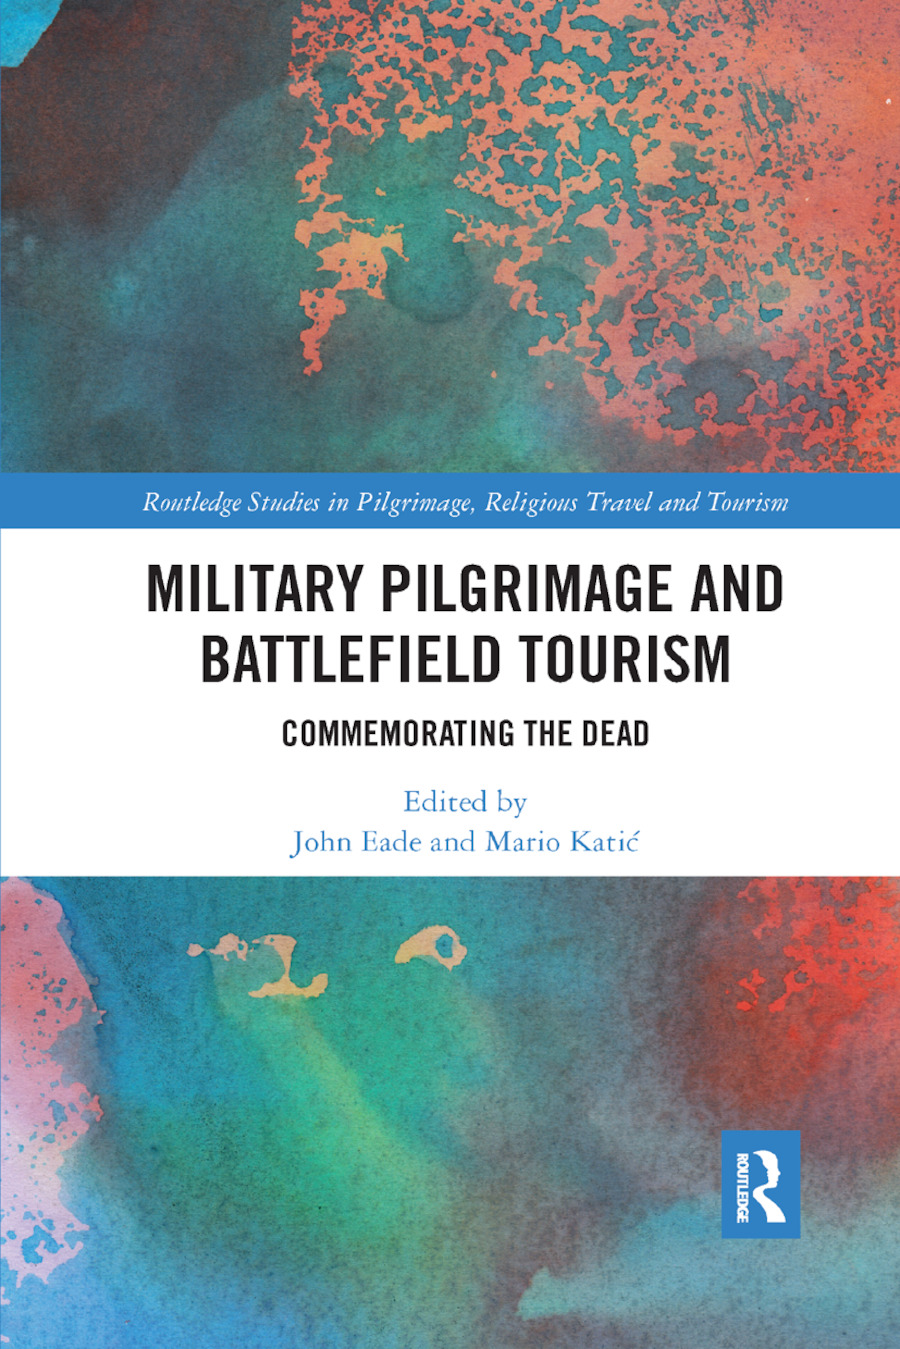 Military Pilgrimage and Battlefield Tourism: Commemorating the Dead book cover